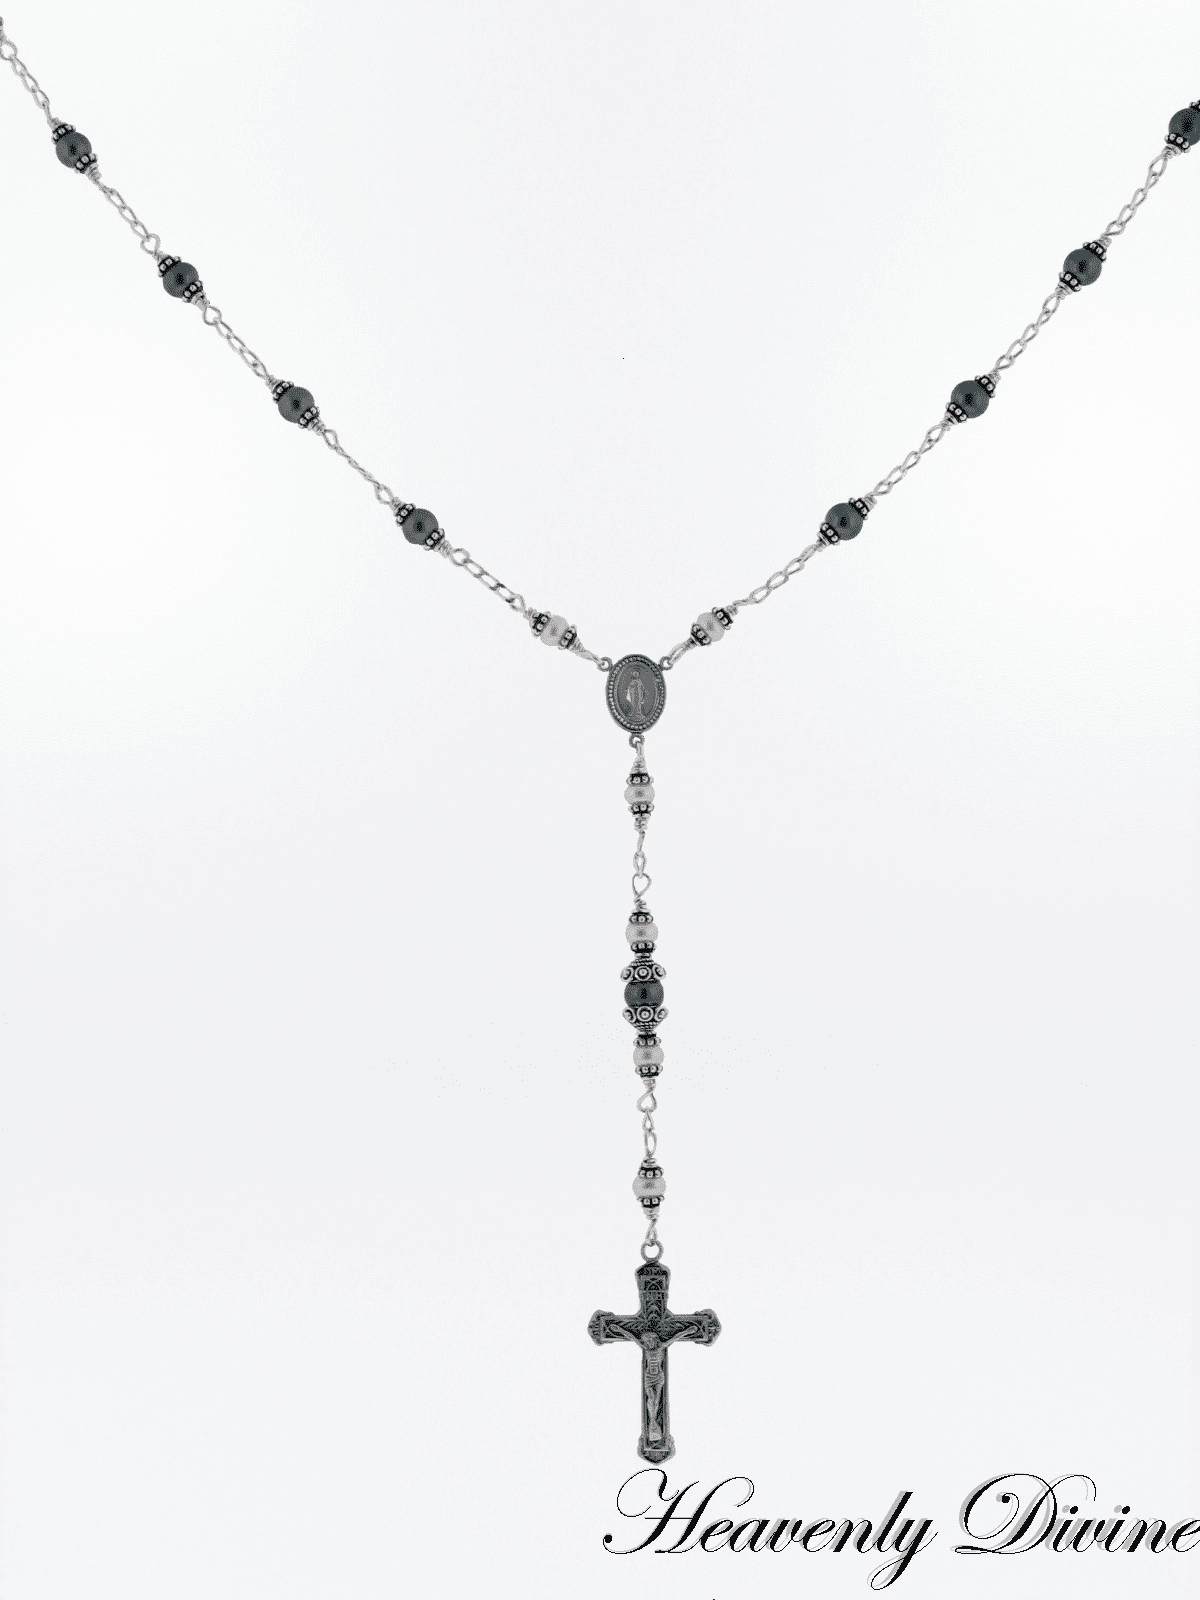 Catholic Handmade Black & White Pearl Rosary Necklace by Heavenly Divine